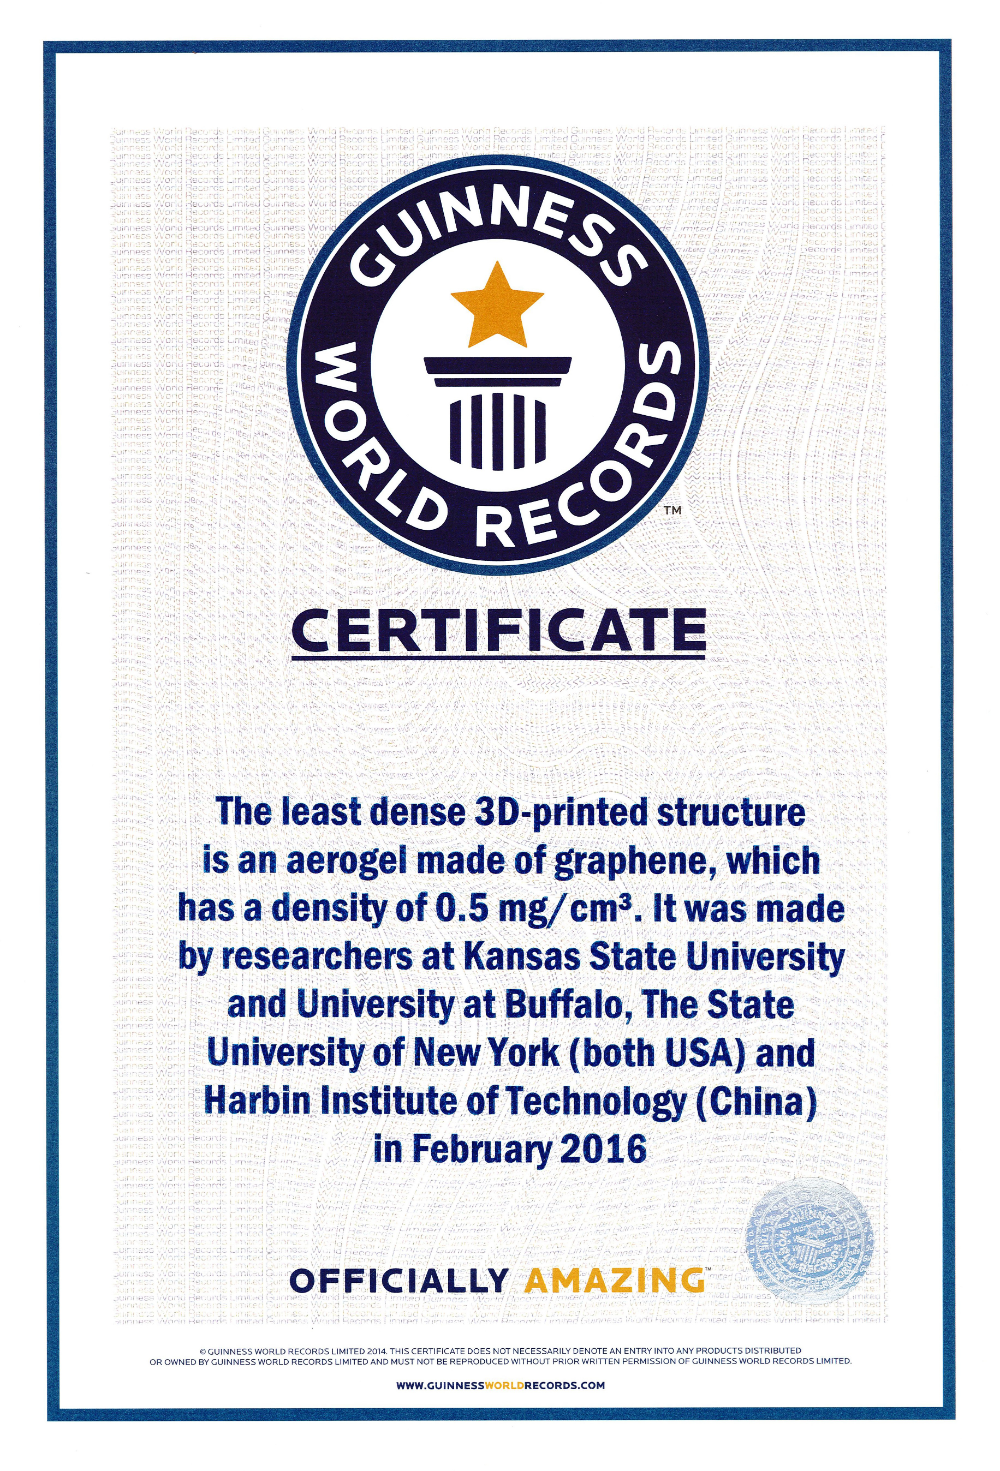 b4b8e8613ab85c9bb3634e178871f7bc - How To Get In The Guinness Book Of Records